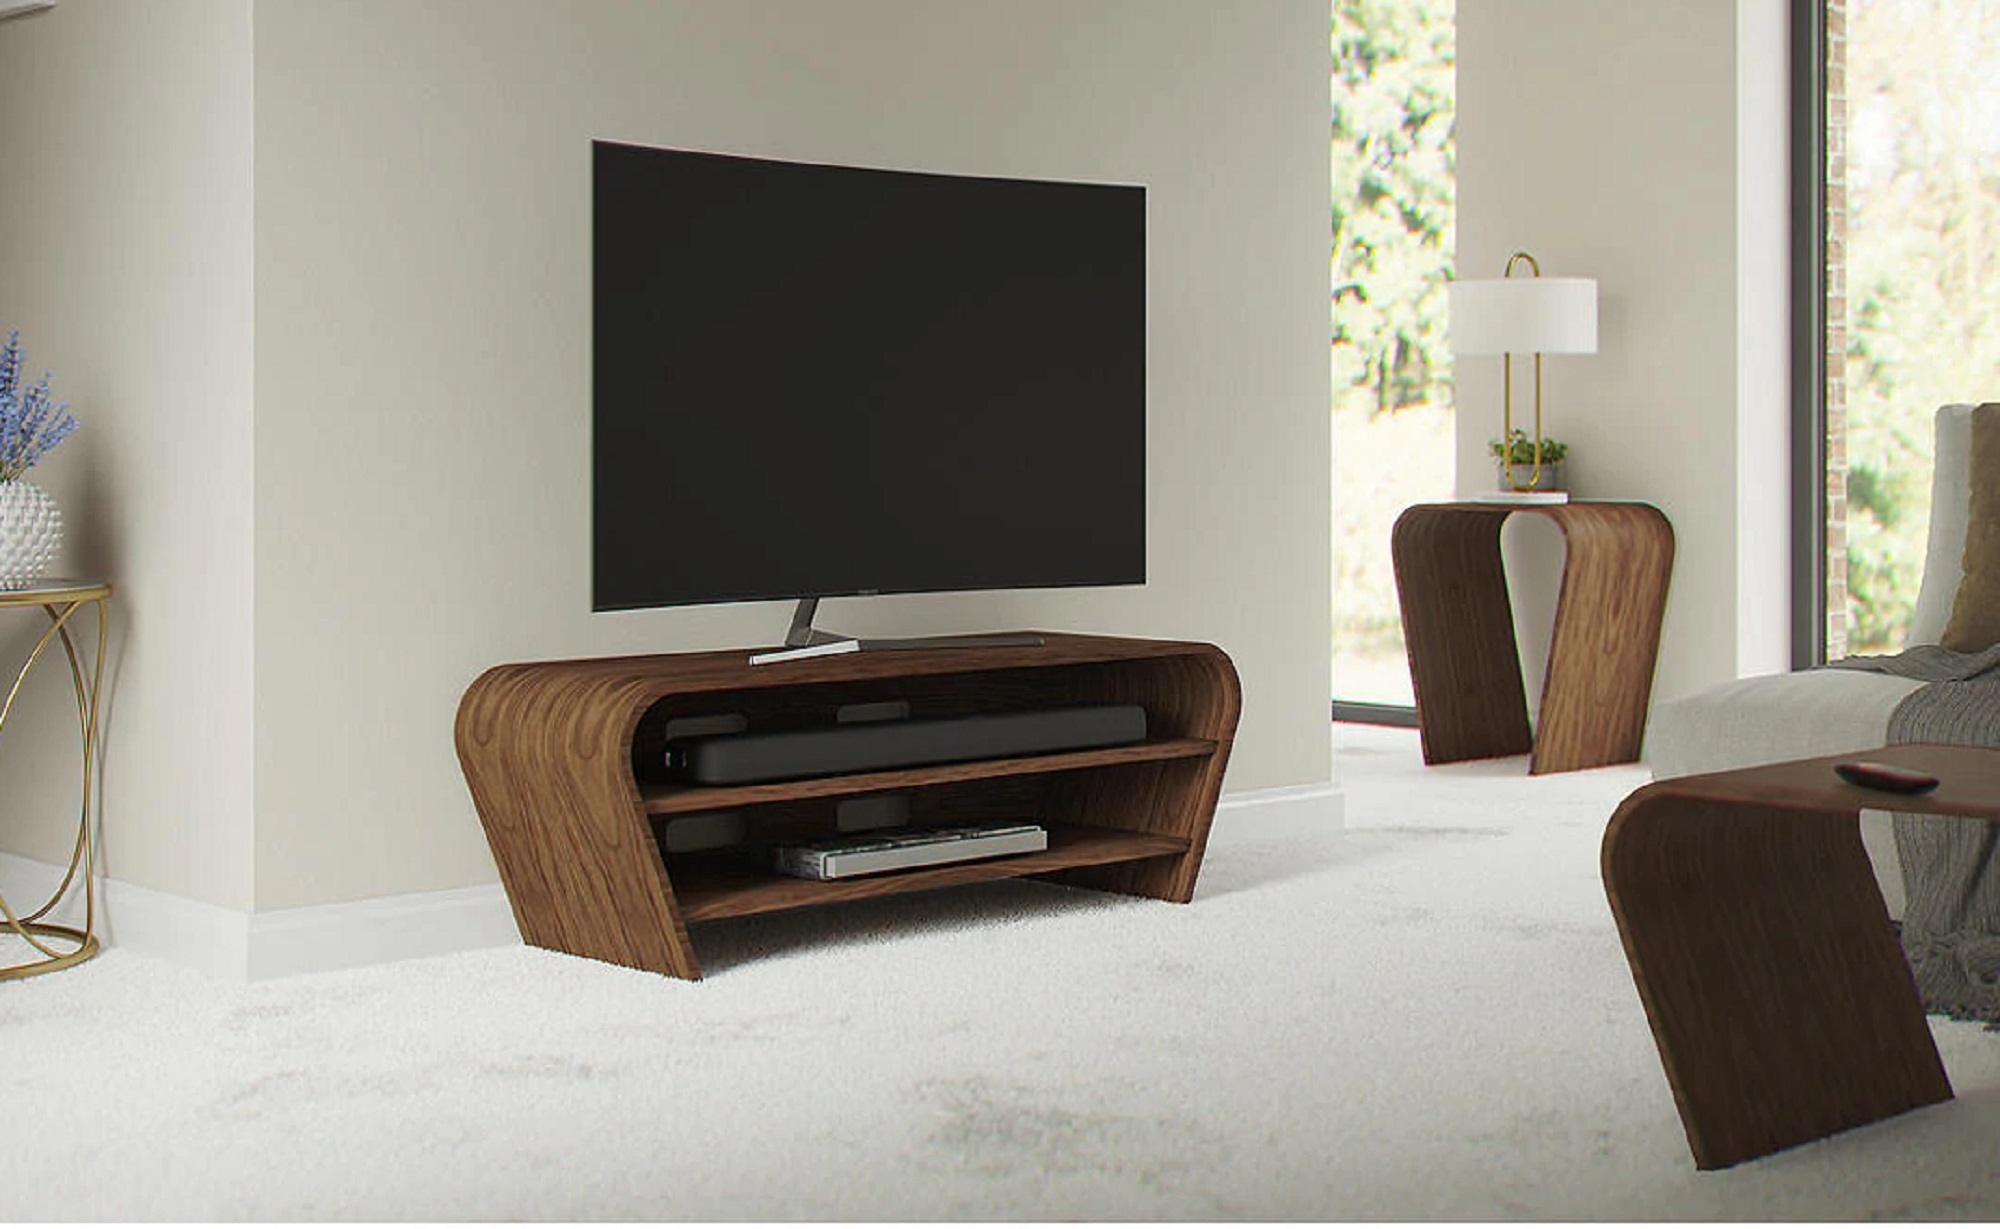 Best Tv Stands 2021 Top Rated Units To Make Bingeing Better Real Homes